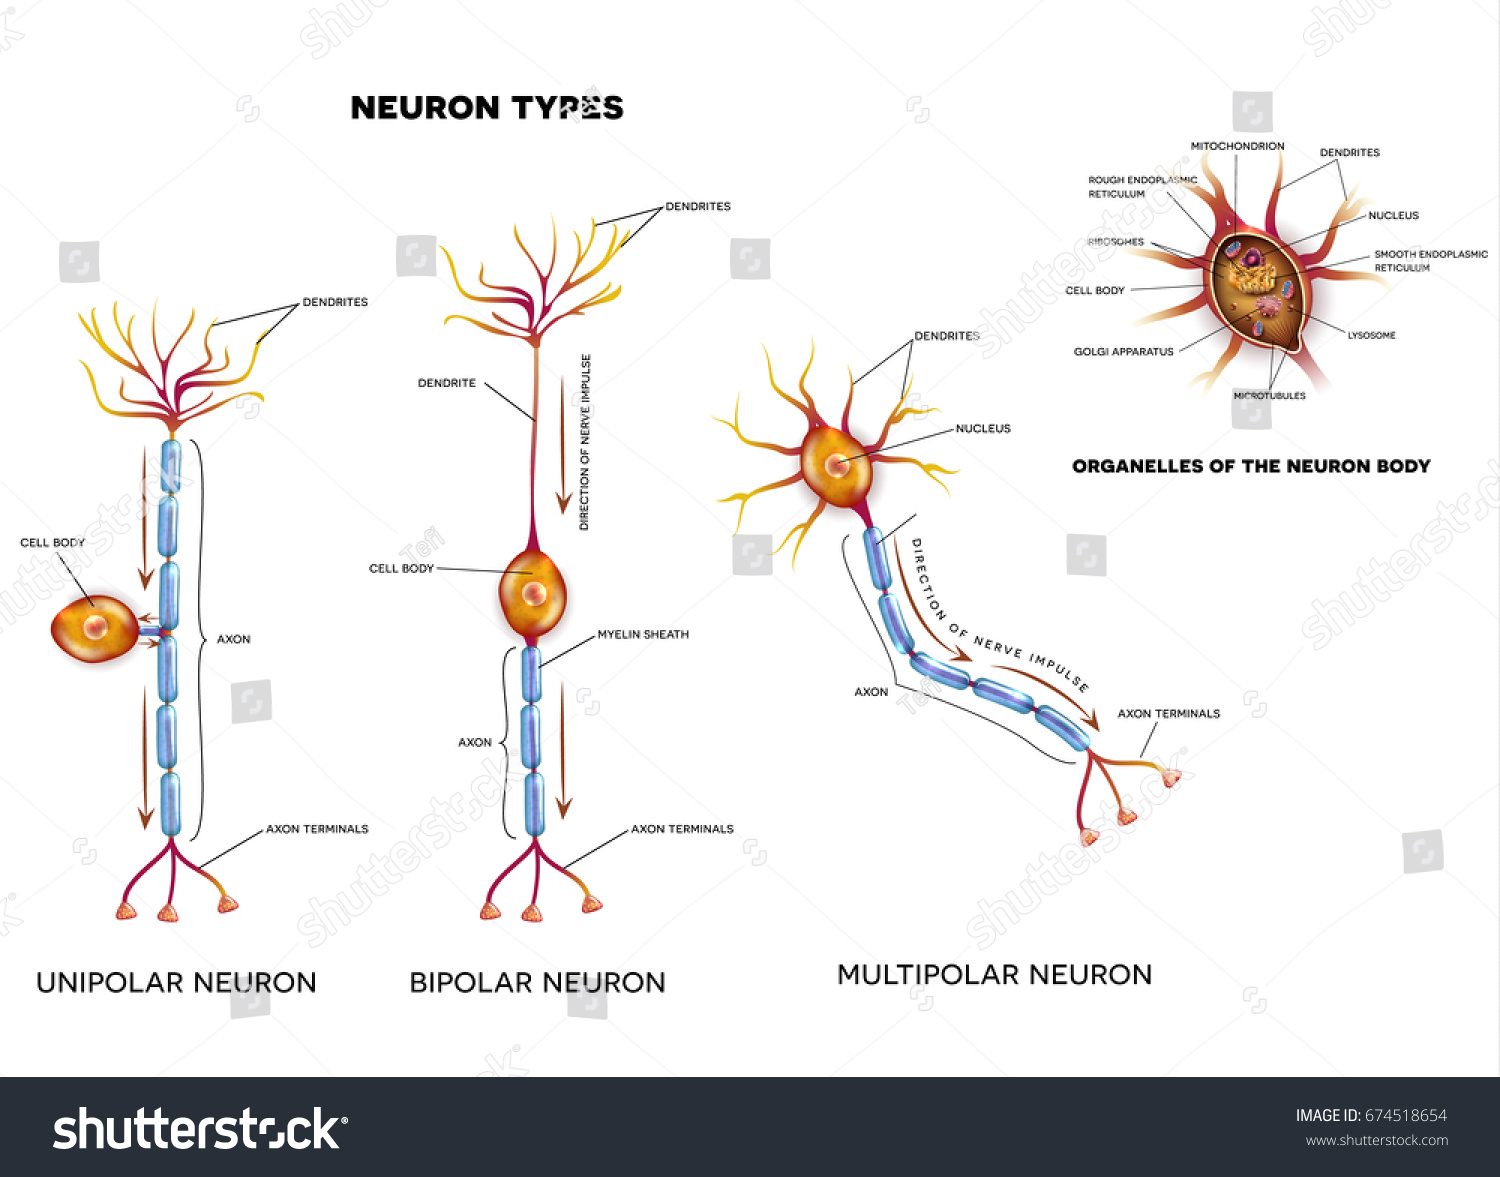 Nerve cell types organelles cell body stock vector 674518654 nerve cell types and organelles of the cell body close up detailed anatomy illustration ccuart Gallery